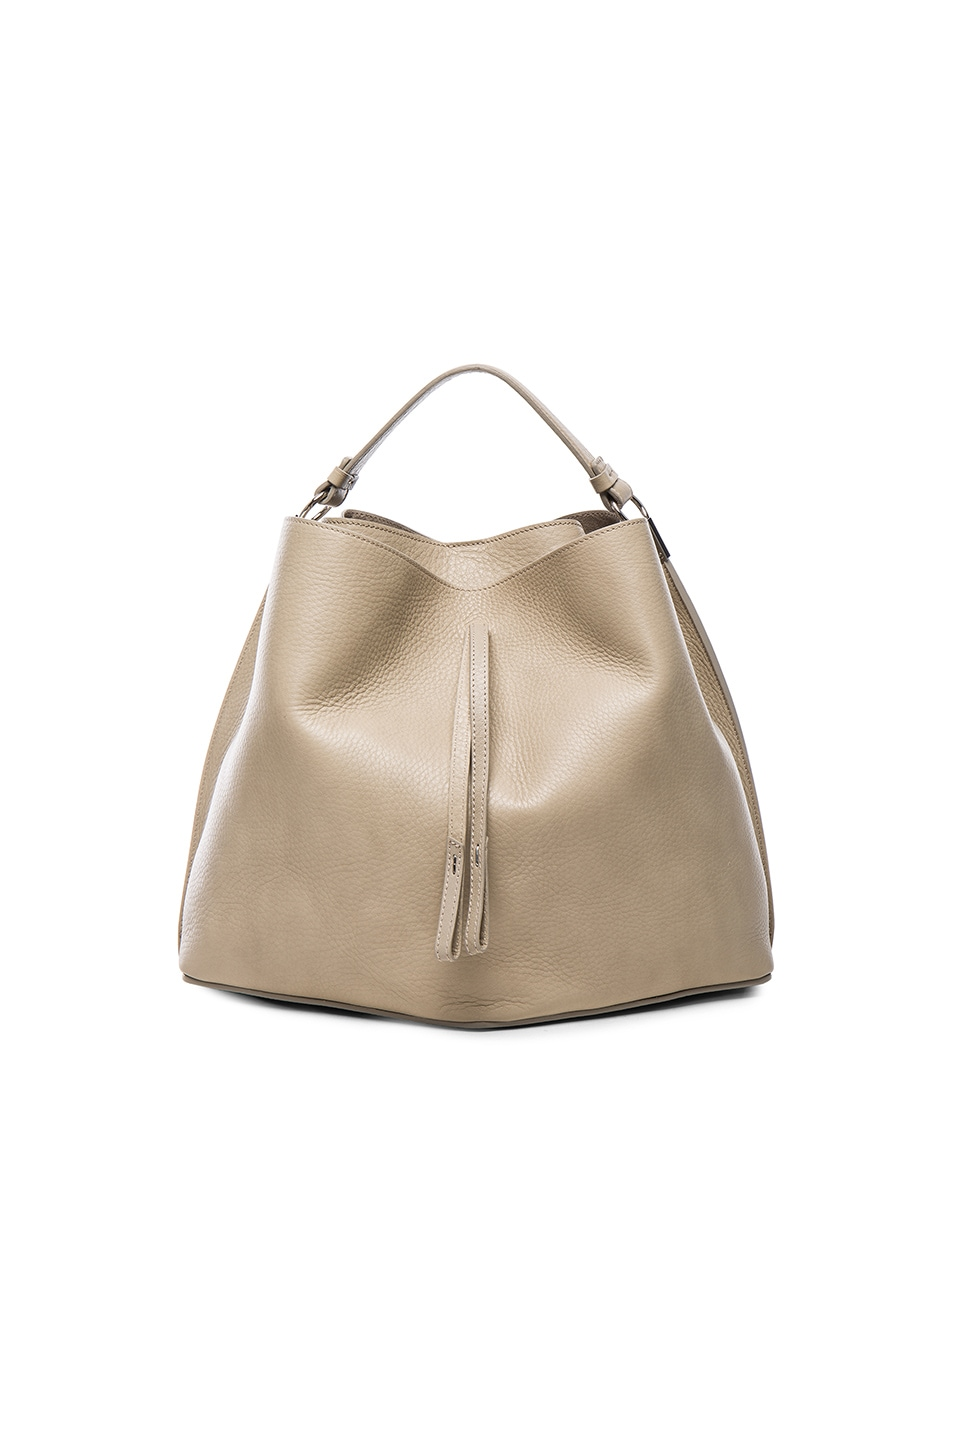 Image 1 of Maison Margiela Leather Satchel in Beige